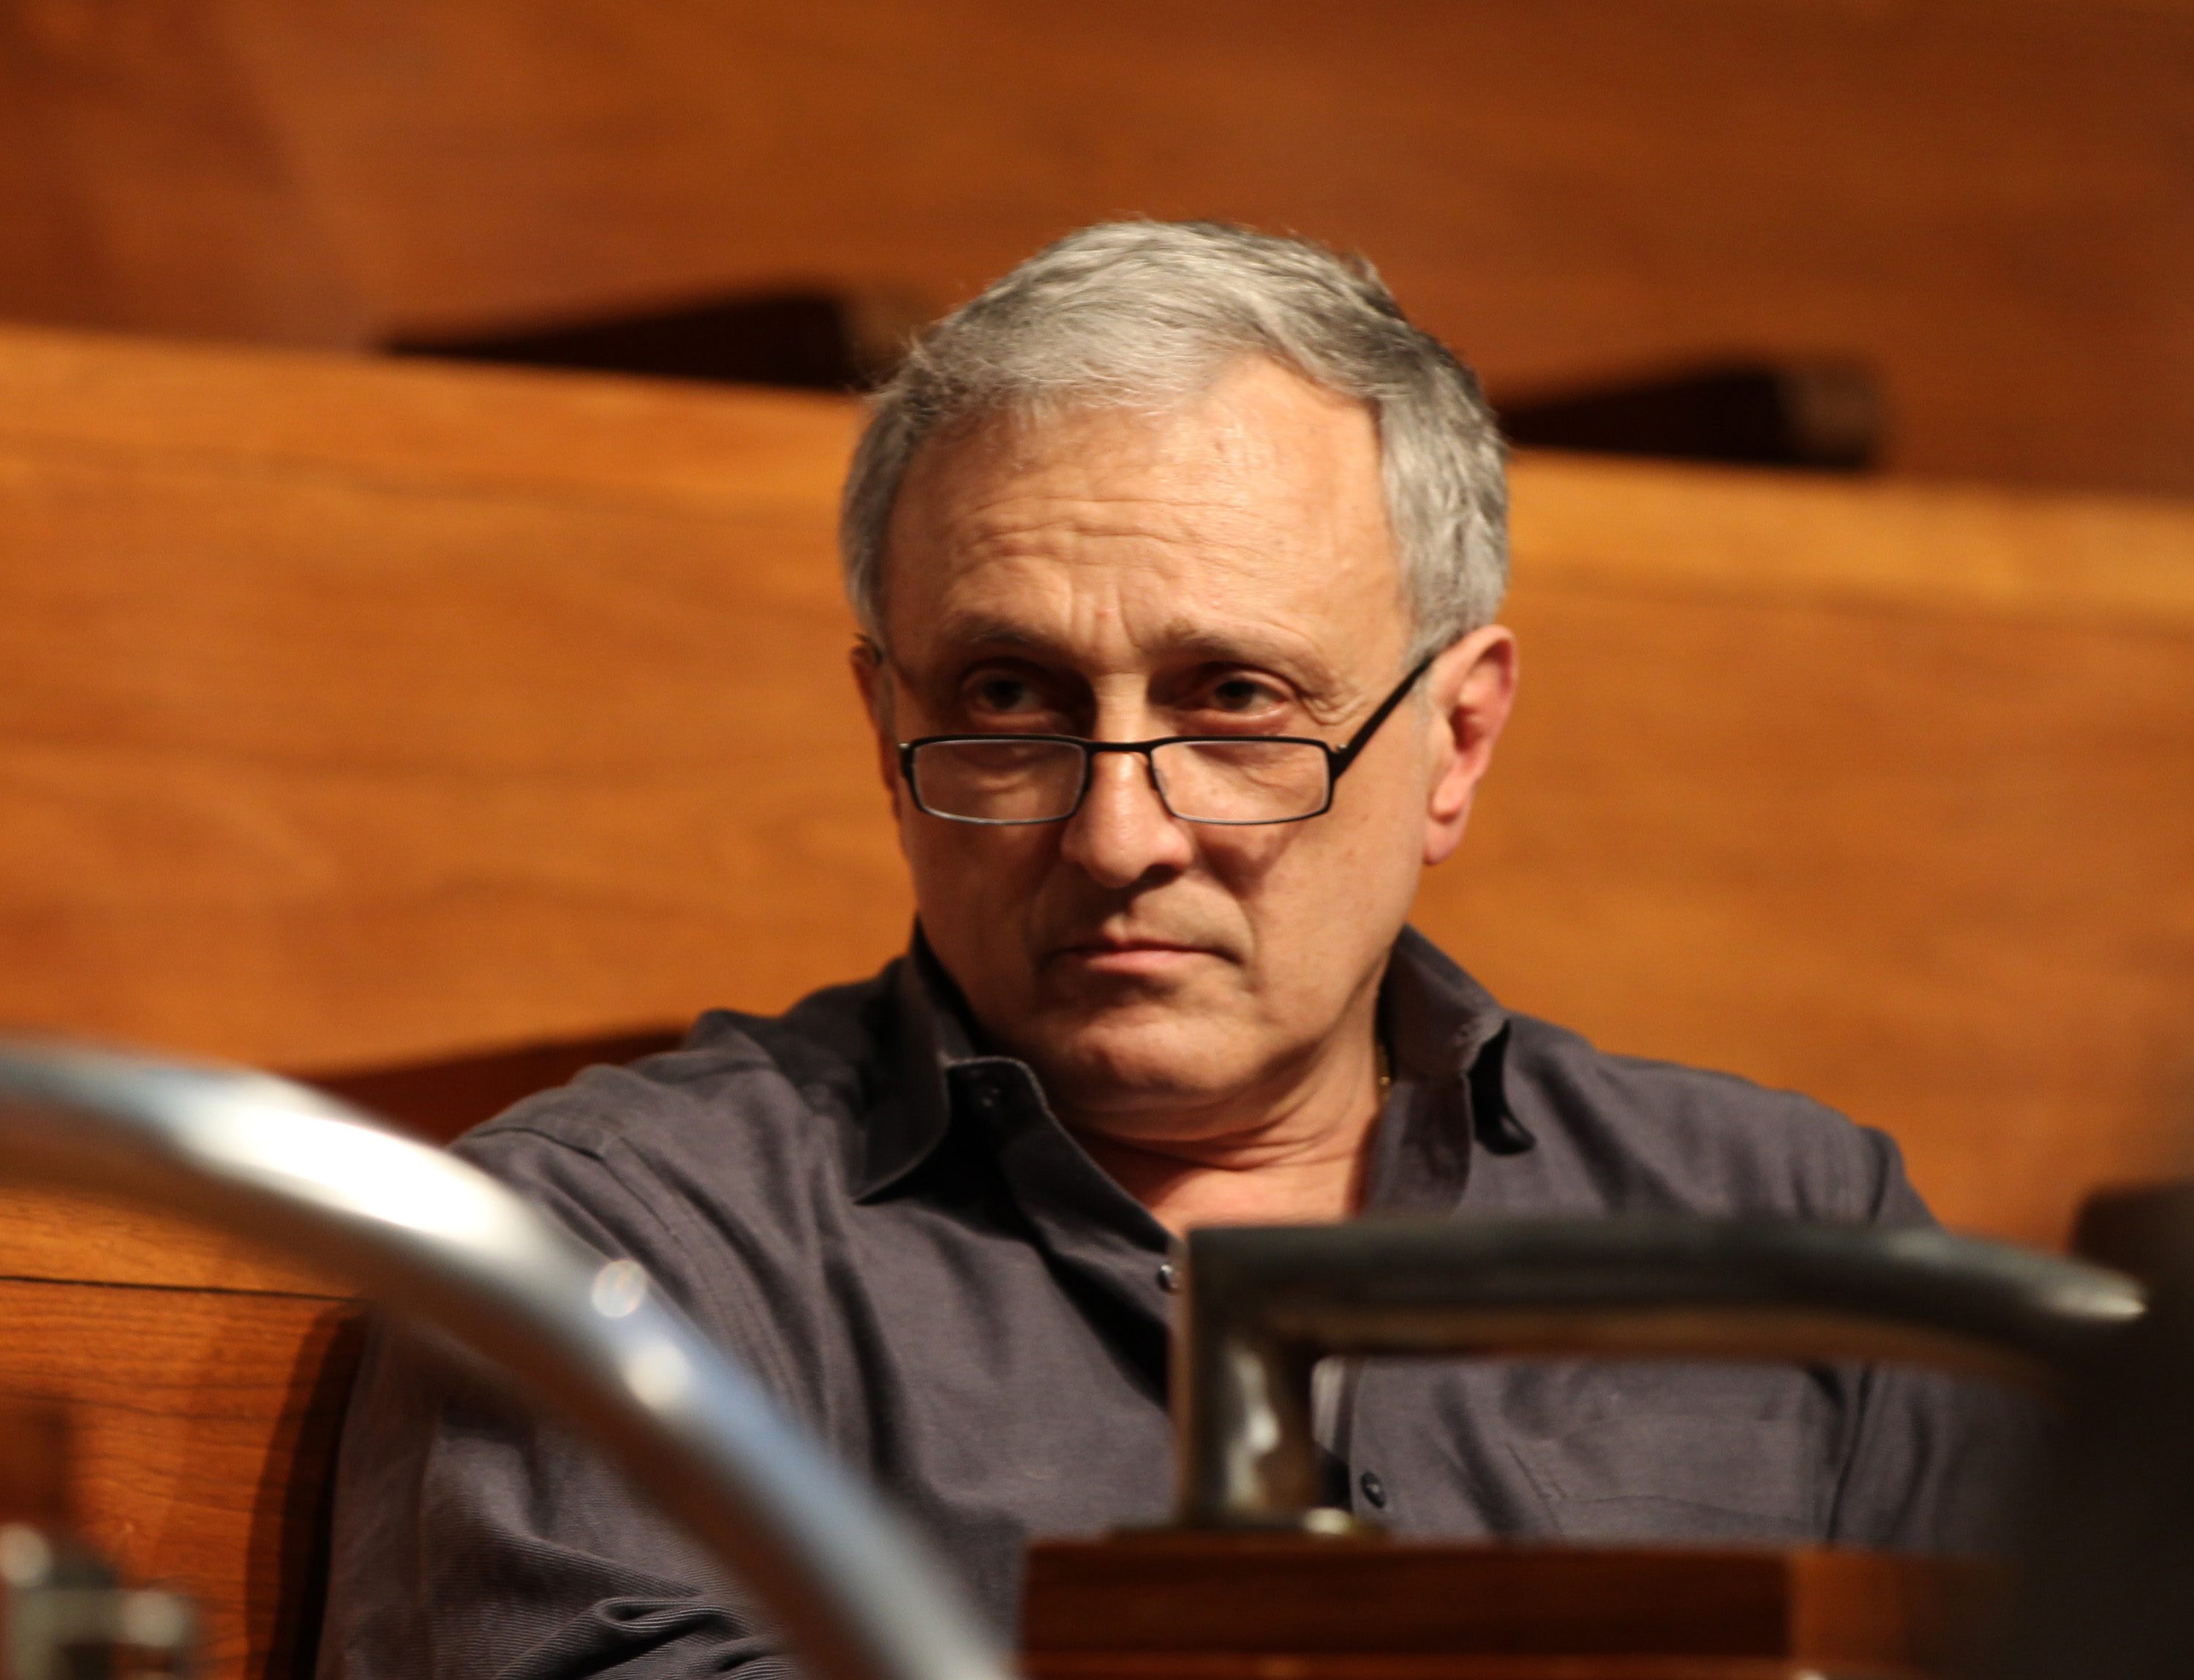 Regent Catherine Collins says the state is exploring legal options to removing Carl Paladino from the Buffalo School Board. (News file photo)